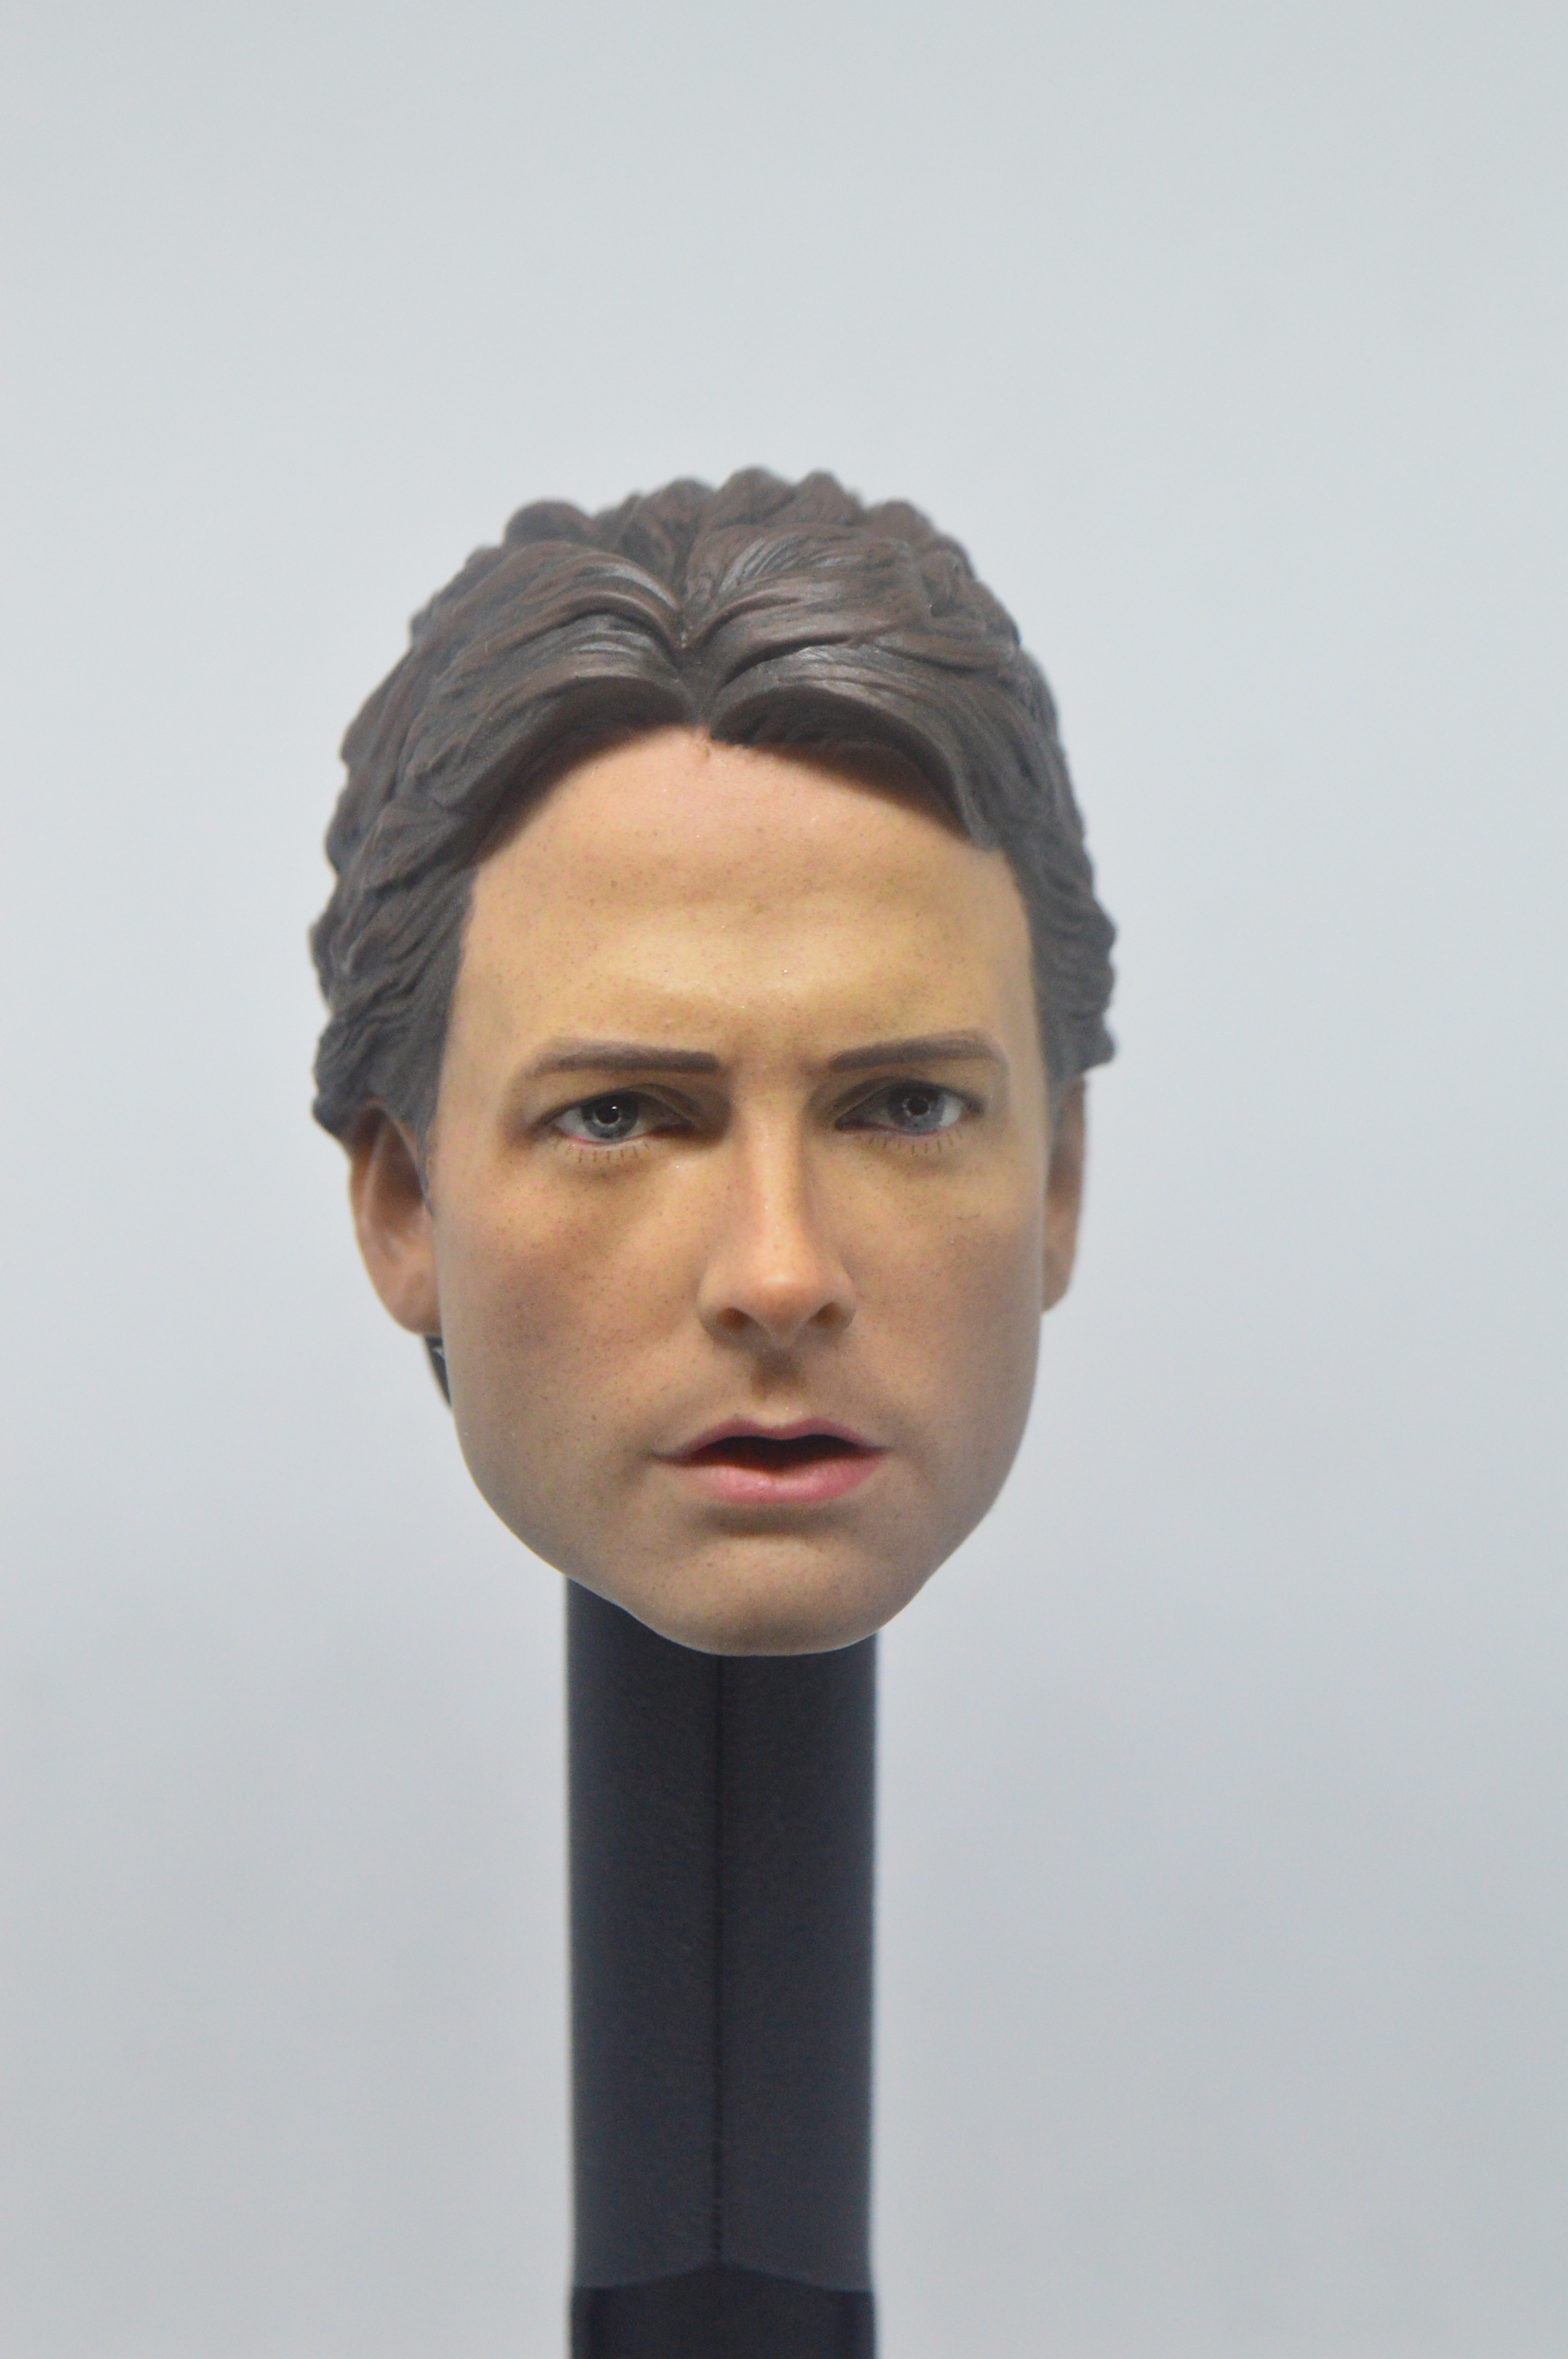 1//6 The Winter Soldier Bucky Head Sculpt For Hot Toys PHICEN Male Figure U.S.A.